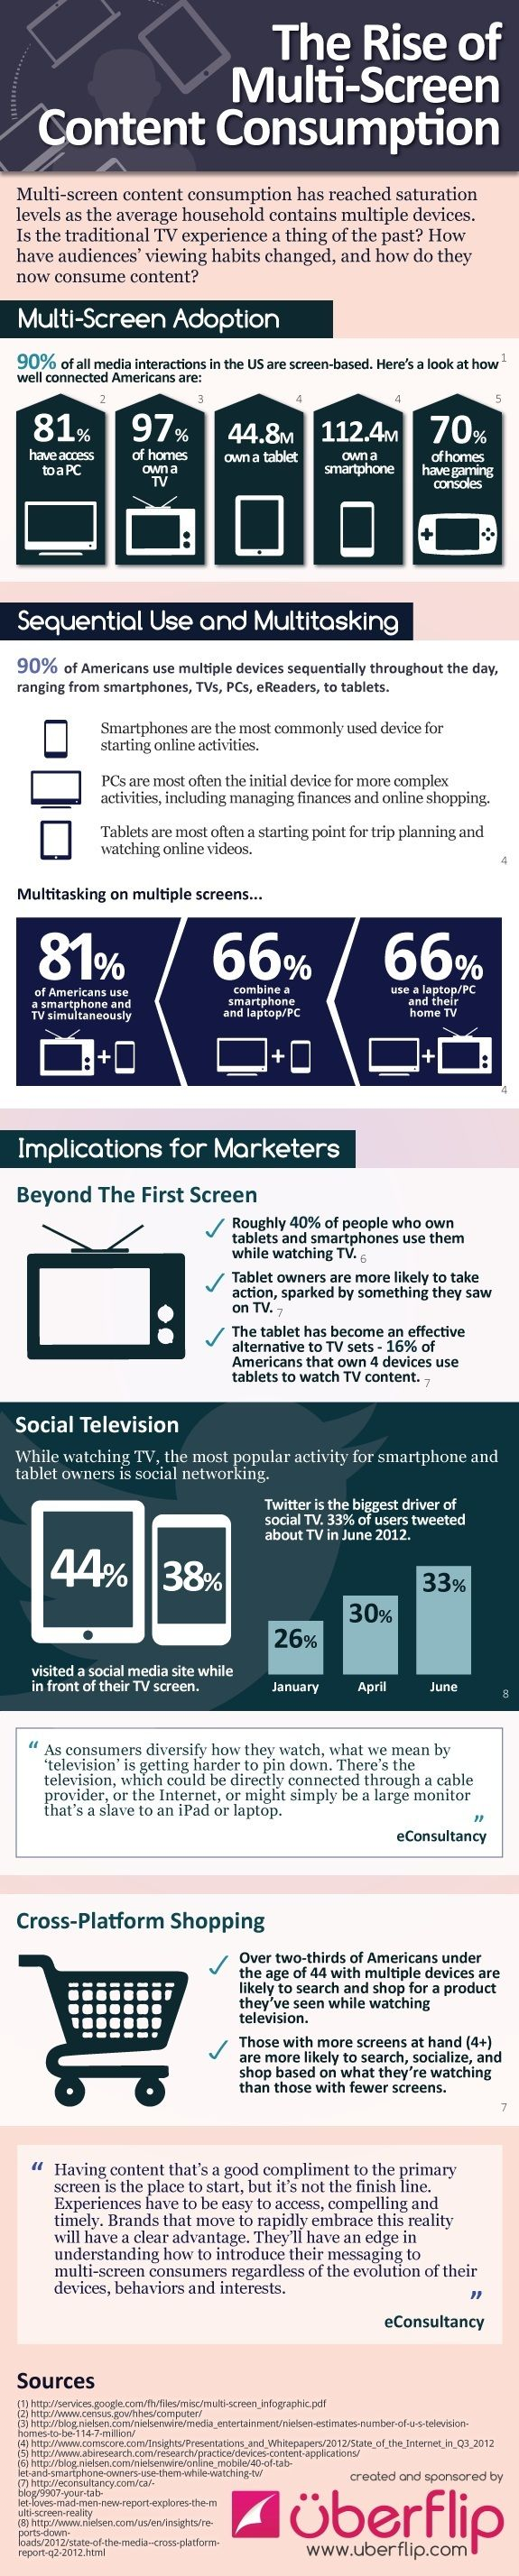 Infographic: The Rise of Multi-Screen Content Consumption